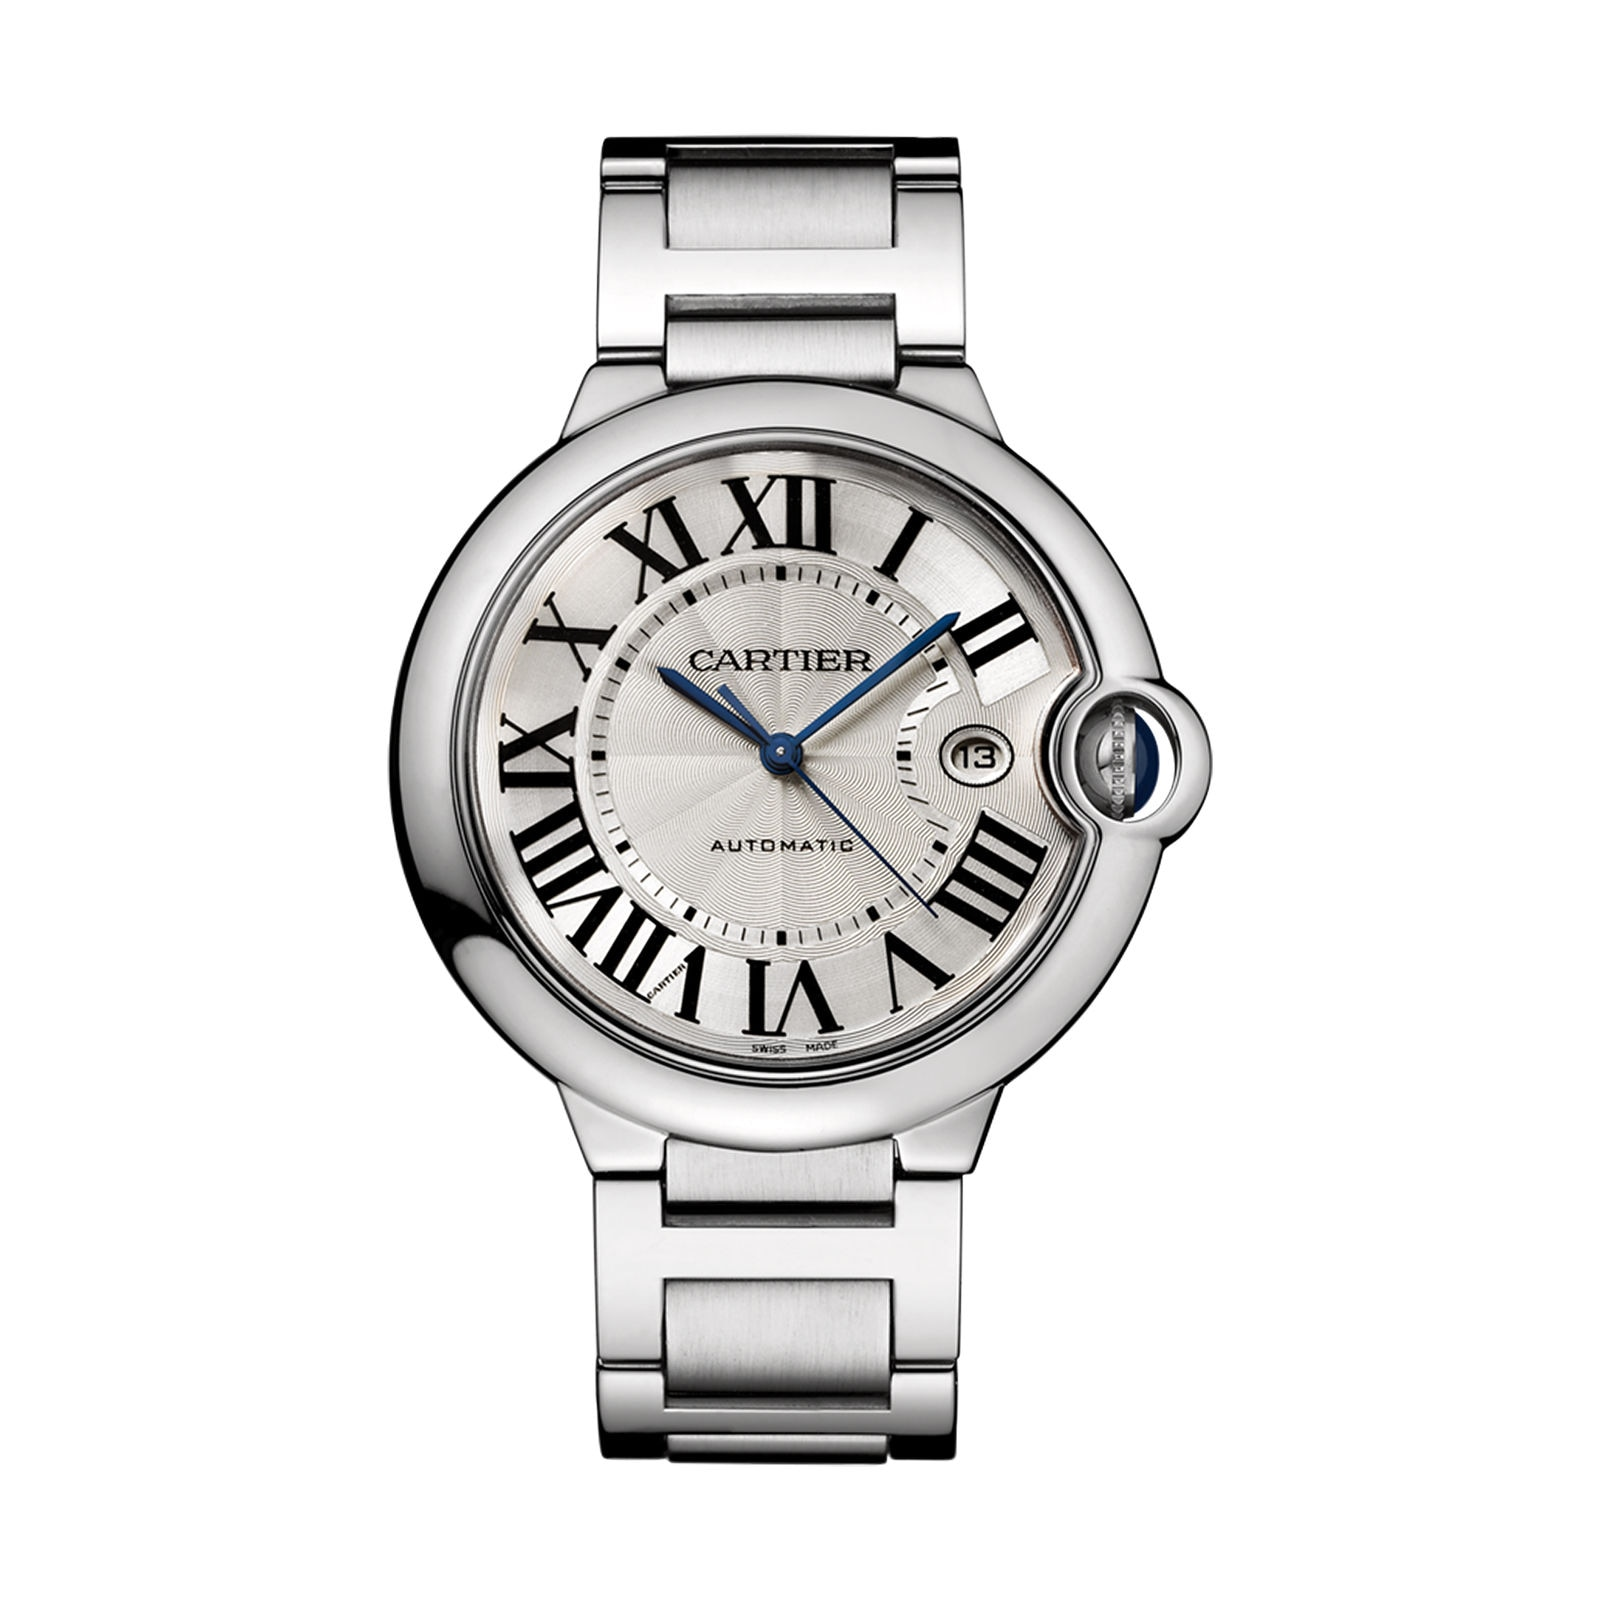 Cartier Ballon Bleu de Cartier watch 42 mm, steel